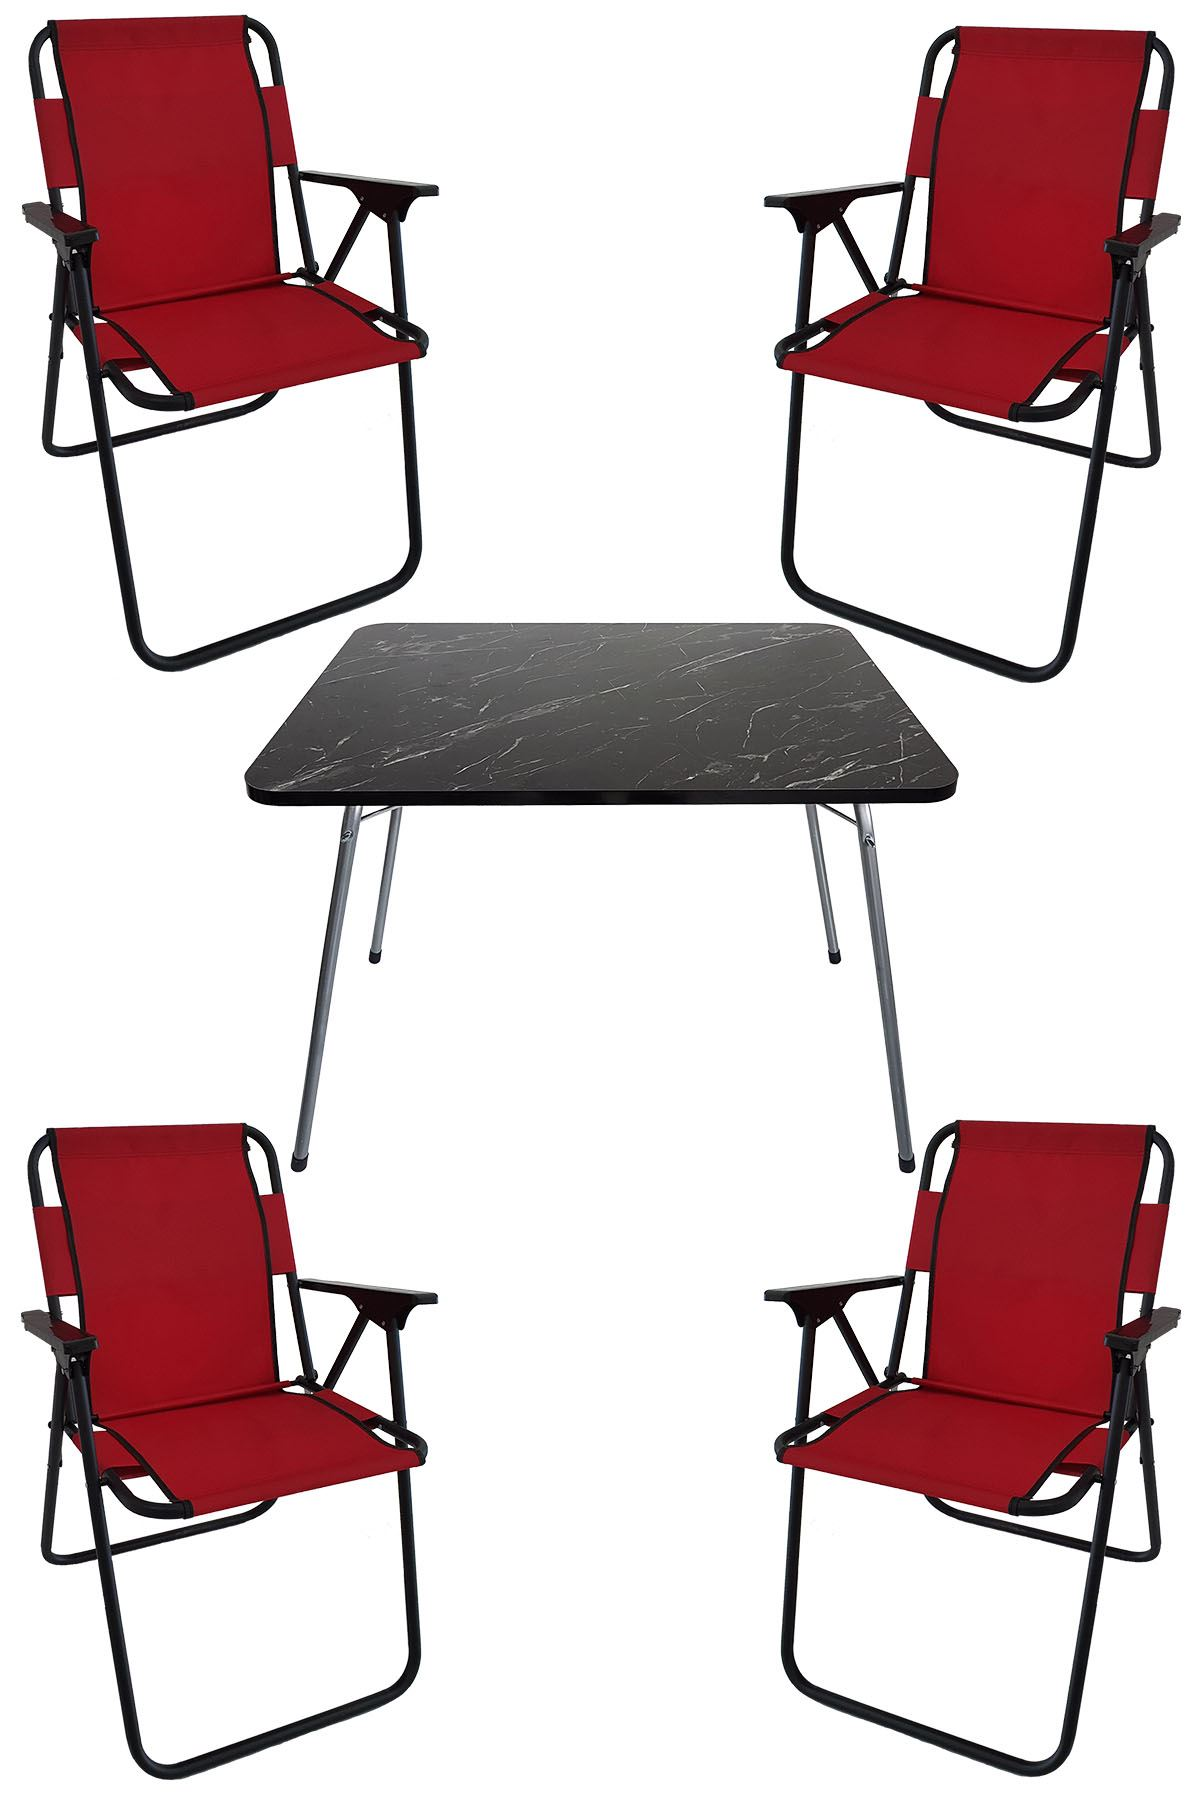 Bofigo 60X80 Granite Patterned Folding Table + 4 Pieces Folding Chair Camping Set Garden Set Red